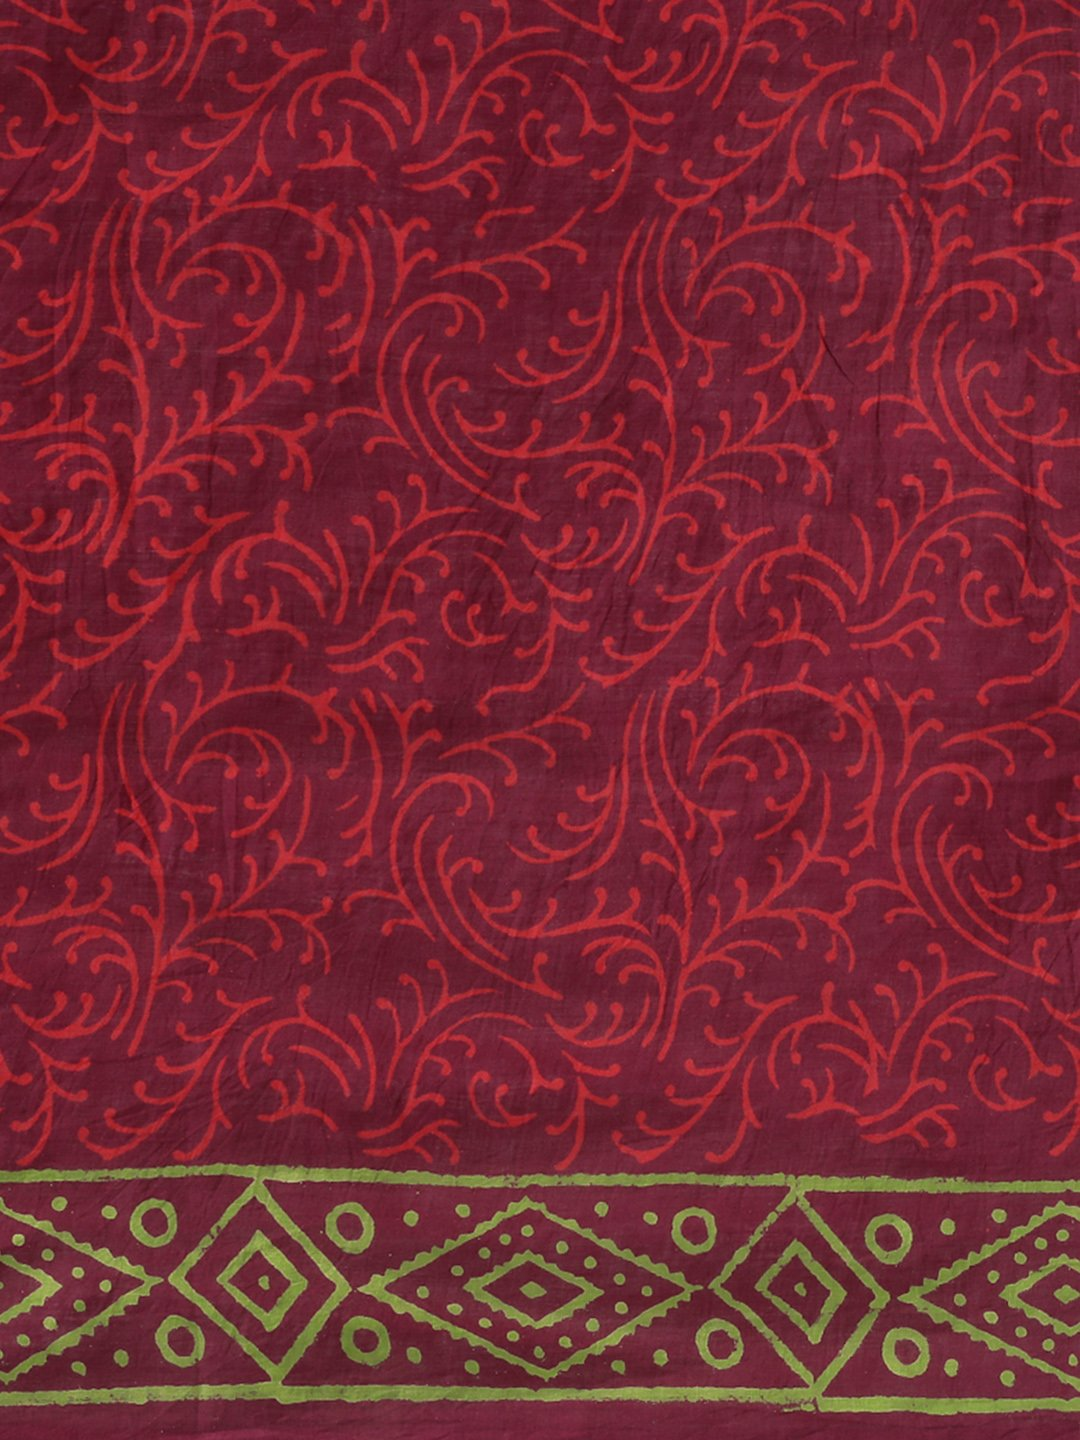 Burgundy Handblock Print Bagru Saree-Saree-Kalakari India-BHKPSA0113-Cotton, Geographical Indication, Hand Blocks, Hand Crafted, Heritage Prints, Sanganeri, Sarees, Sustainable Fabrics-[Linen,Ethnic,wear,Fashionista,Handloom,Handicraft,Indigo,blockprint,block,print,Cotton,Chanderi,Blue, latest,classy,party,bollywood,trendy,summer,style,traditional,formal,elegant,unique,style,hand,block,print, dabu,booti,gift,present,glamorous,affordable,collectible,Sari,Saree,printed, holi, Diwali, birthday, ann